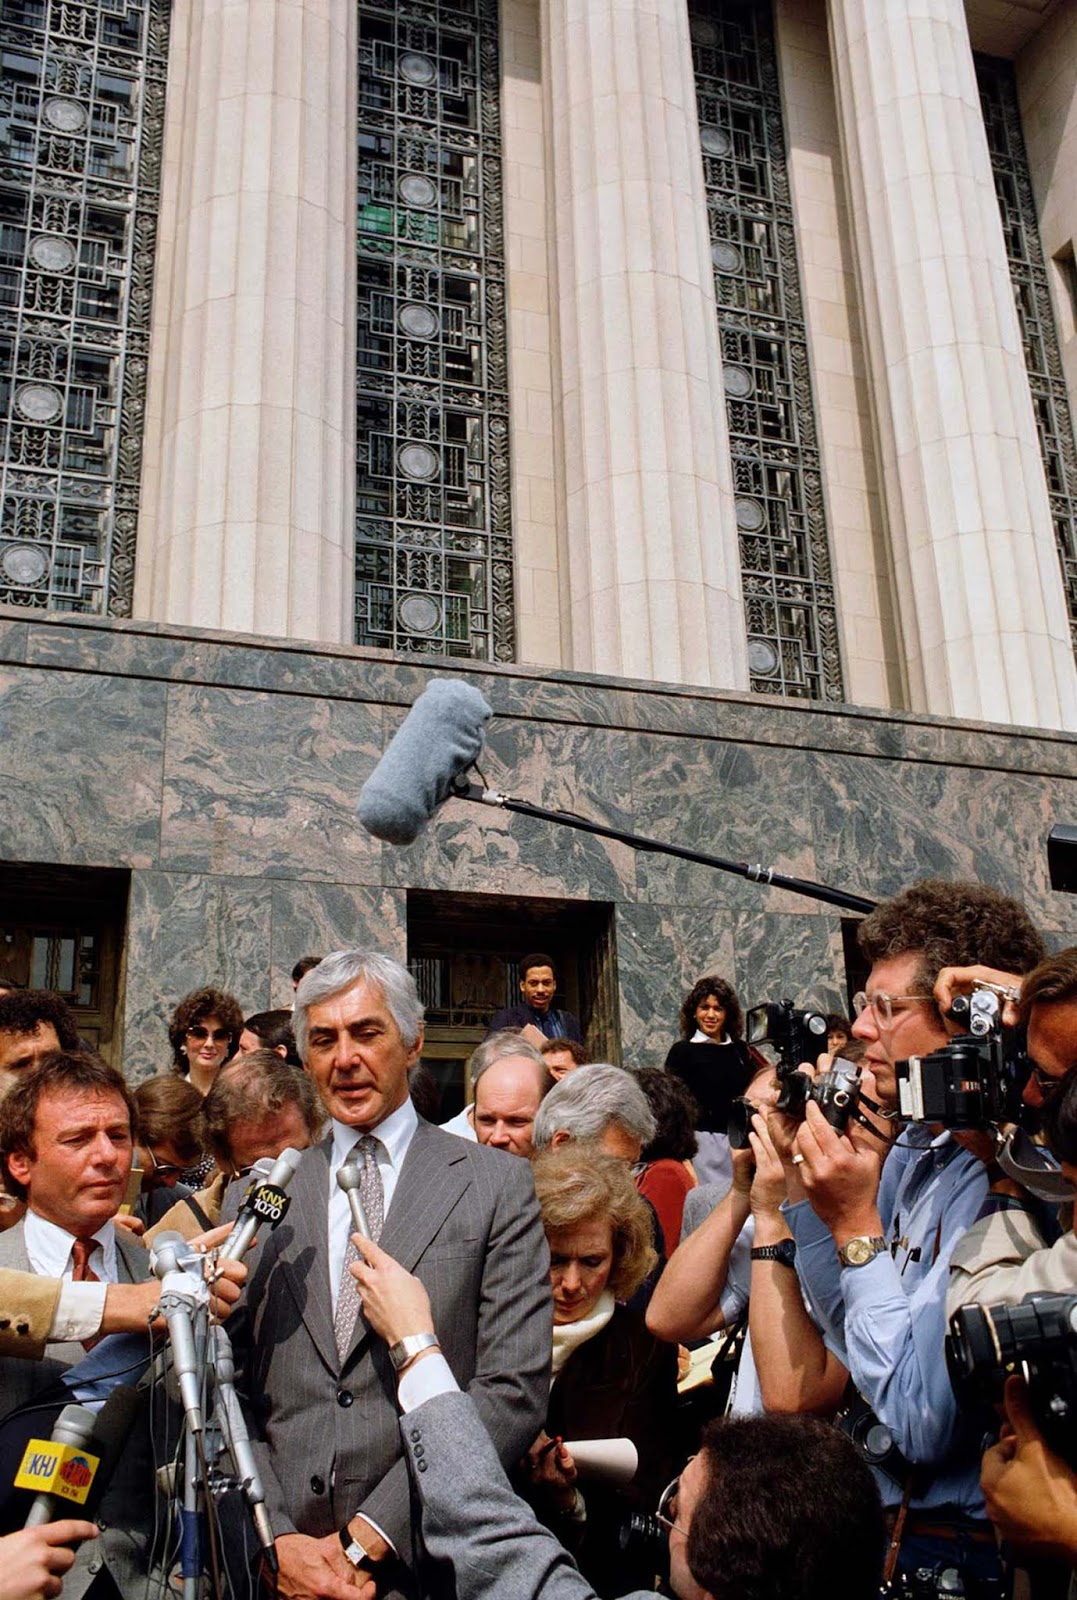 DeLorean outside the Los Angeles courtroom during his trial for a drug dealing charge. 1984.